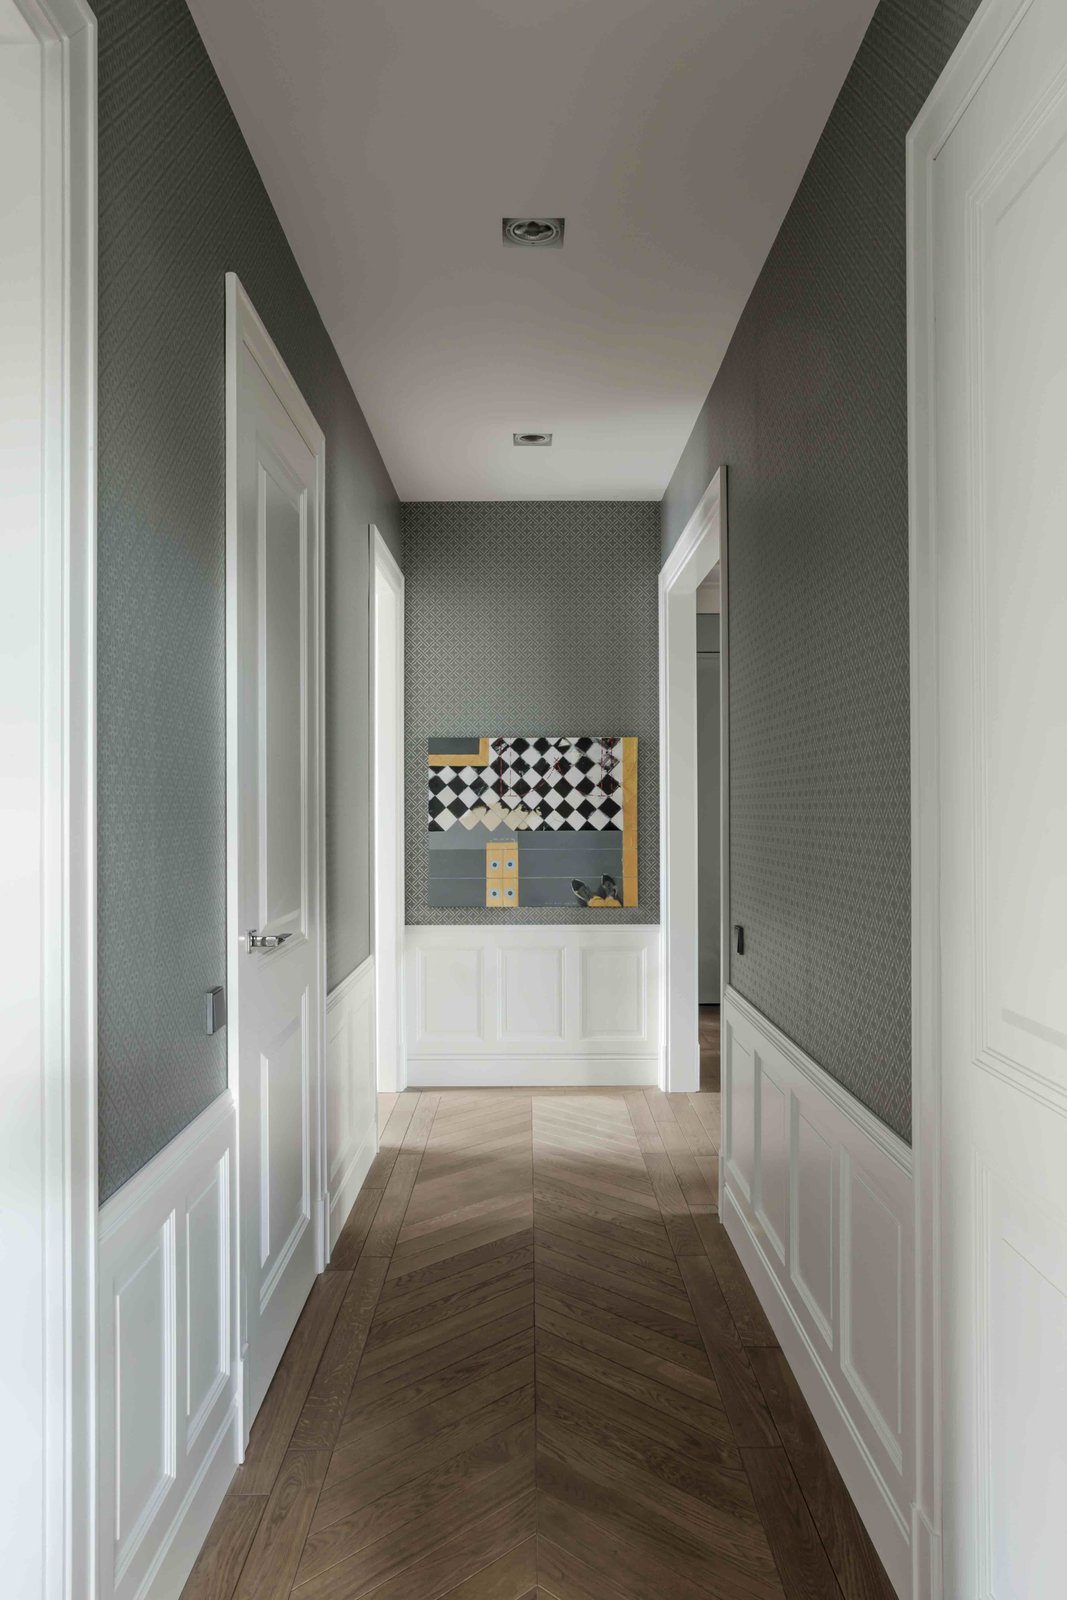 Hallway and Medium Hardwood Floor  Photo 8 of 12 in Filled With Color and Pattern, This Eclectic Apartment Brings a Little Madrid to Warsaw